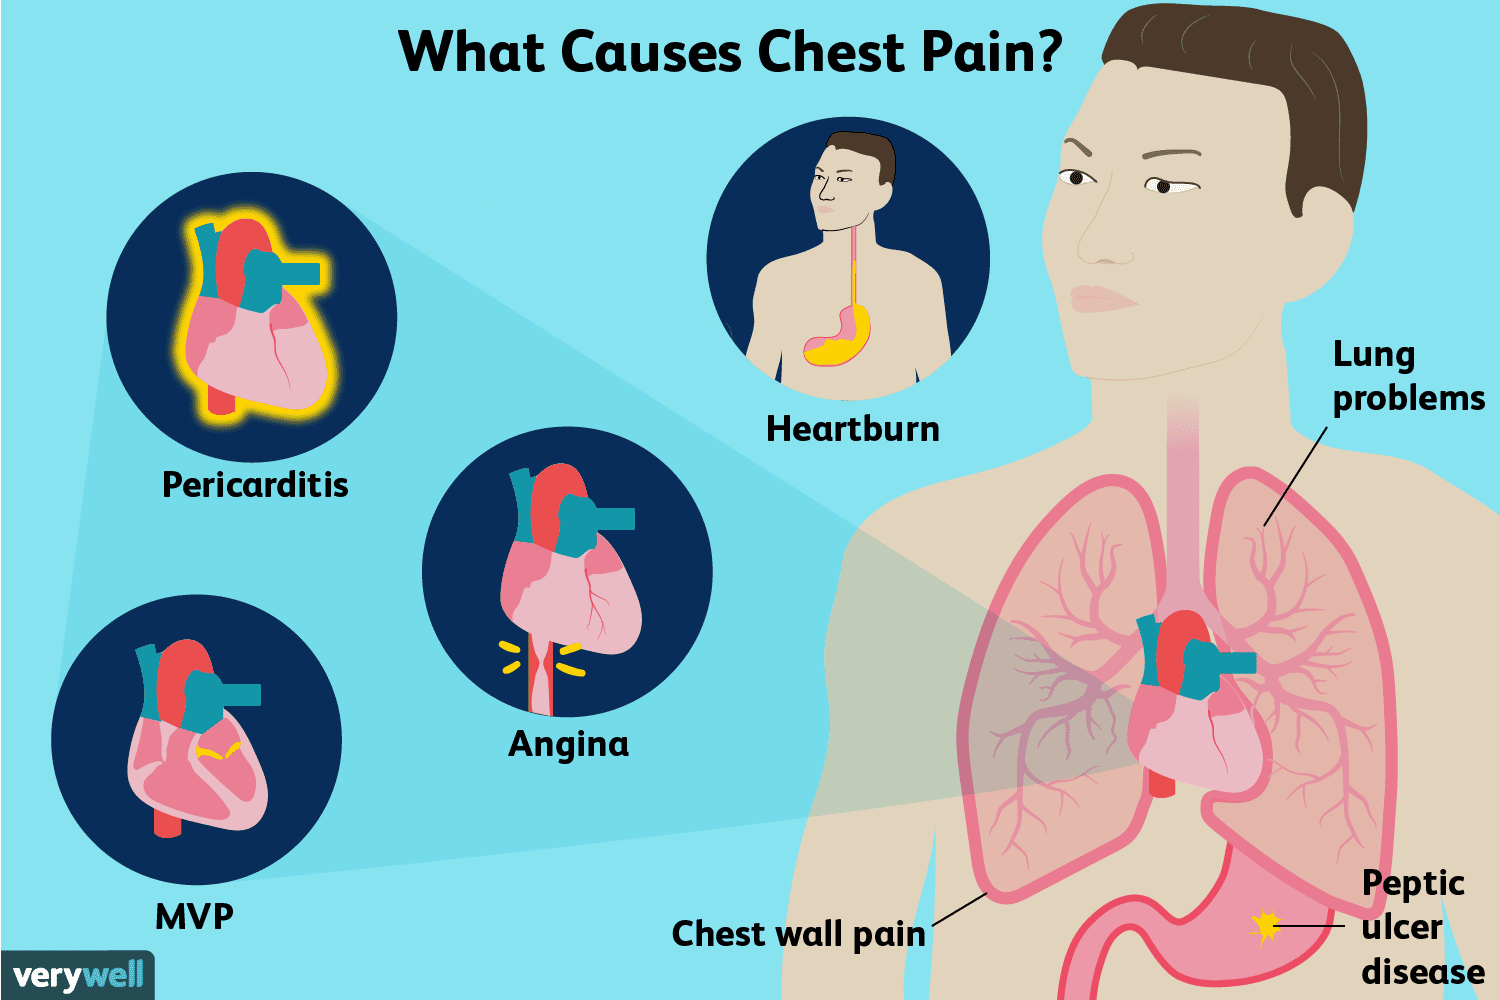 Chest Pain: Causes, Treatment, and When to See a Doctor